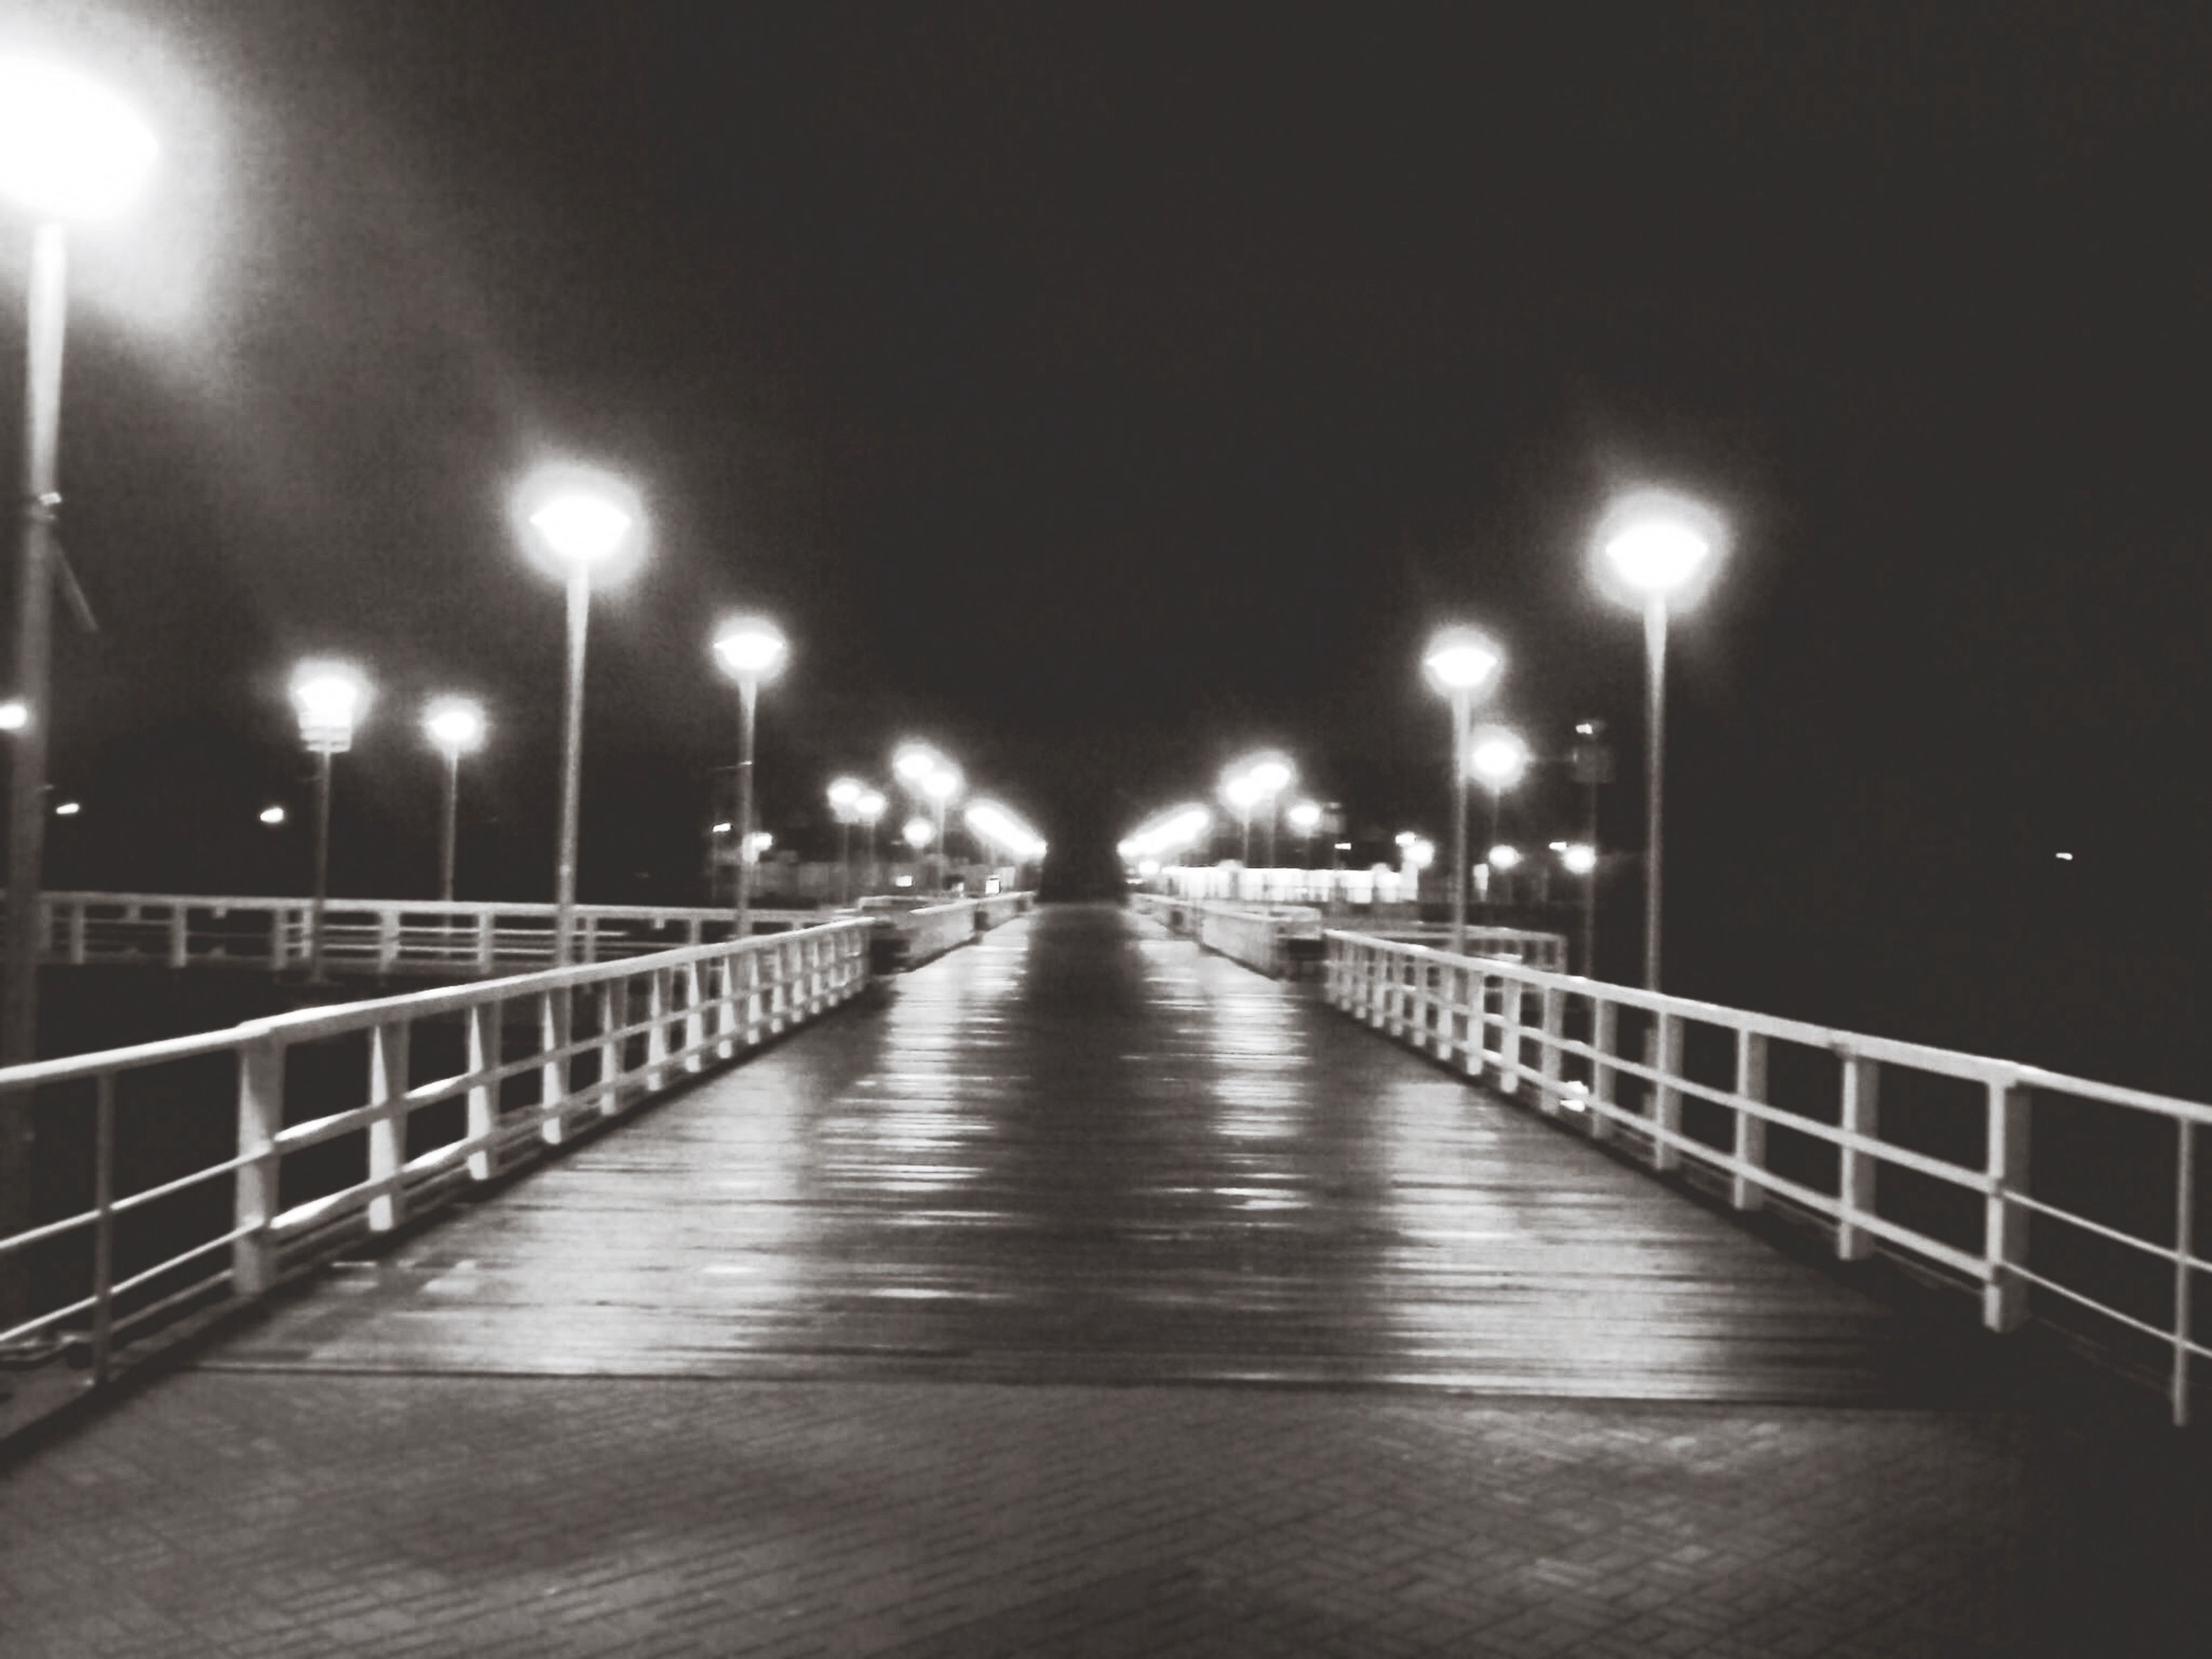 illuminated, night, the way forward, street light, lighting equipment, built structure, railing, architecture, diminishing perspective, connection, vanishing point, bridge - man made structure, footbridge, reflection, walkway, in a row, empty, city, long, electric light